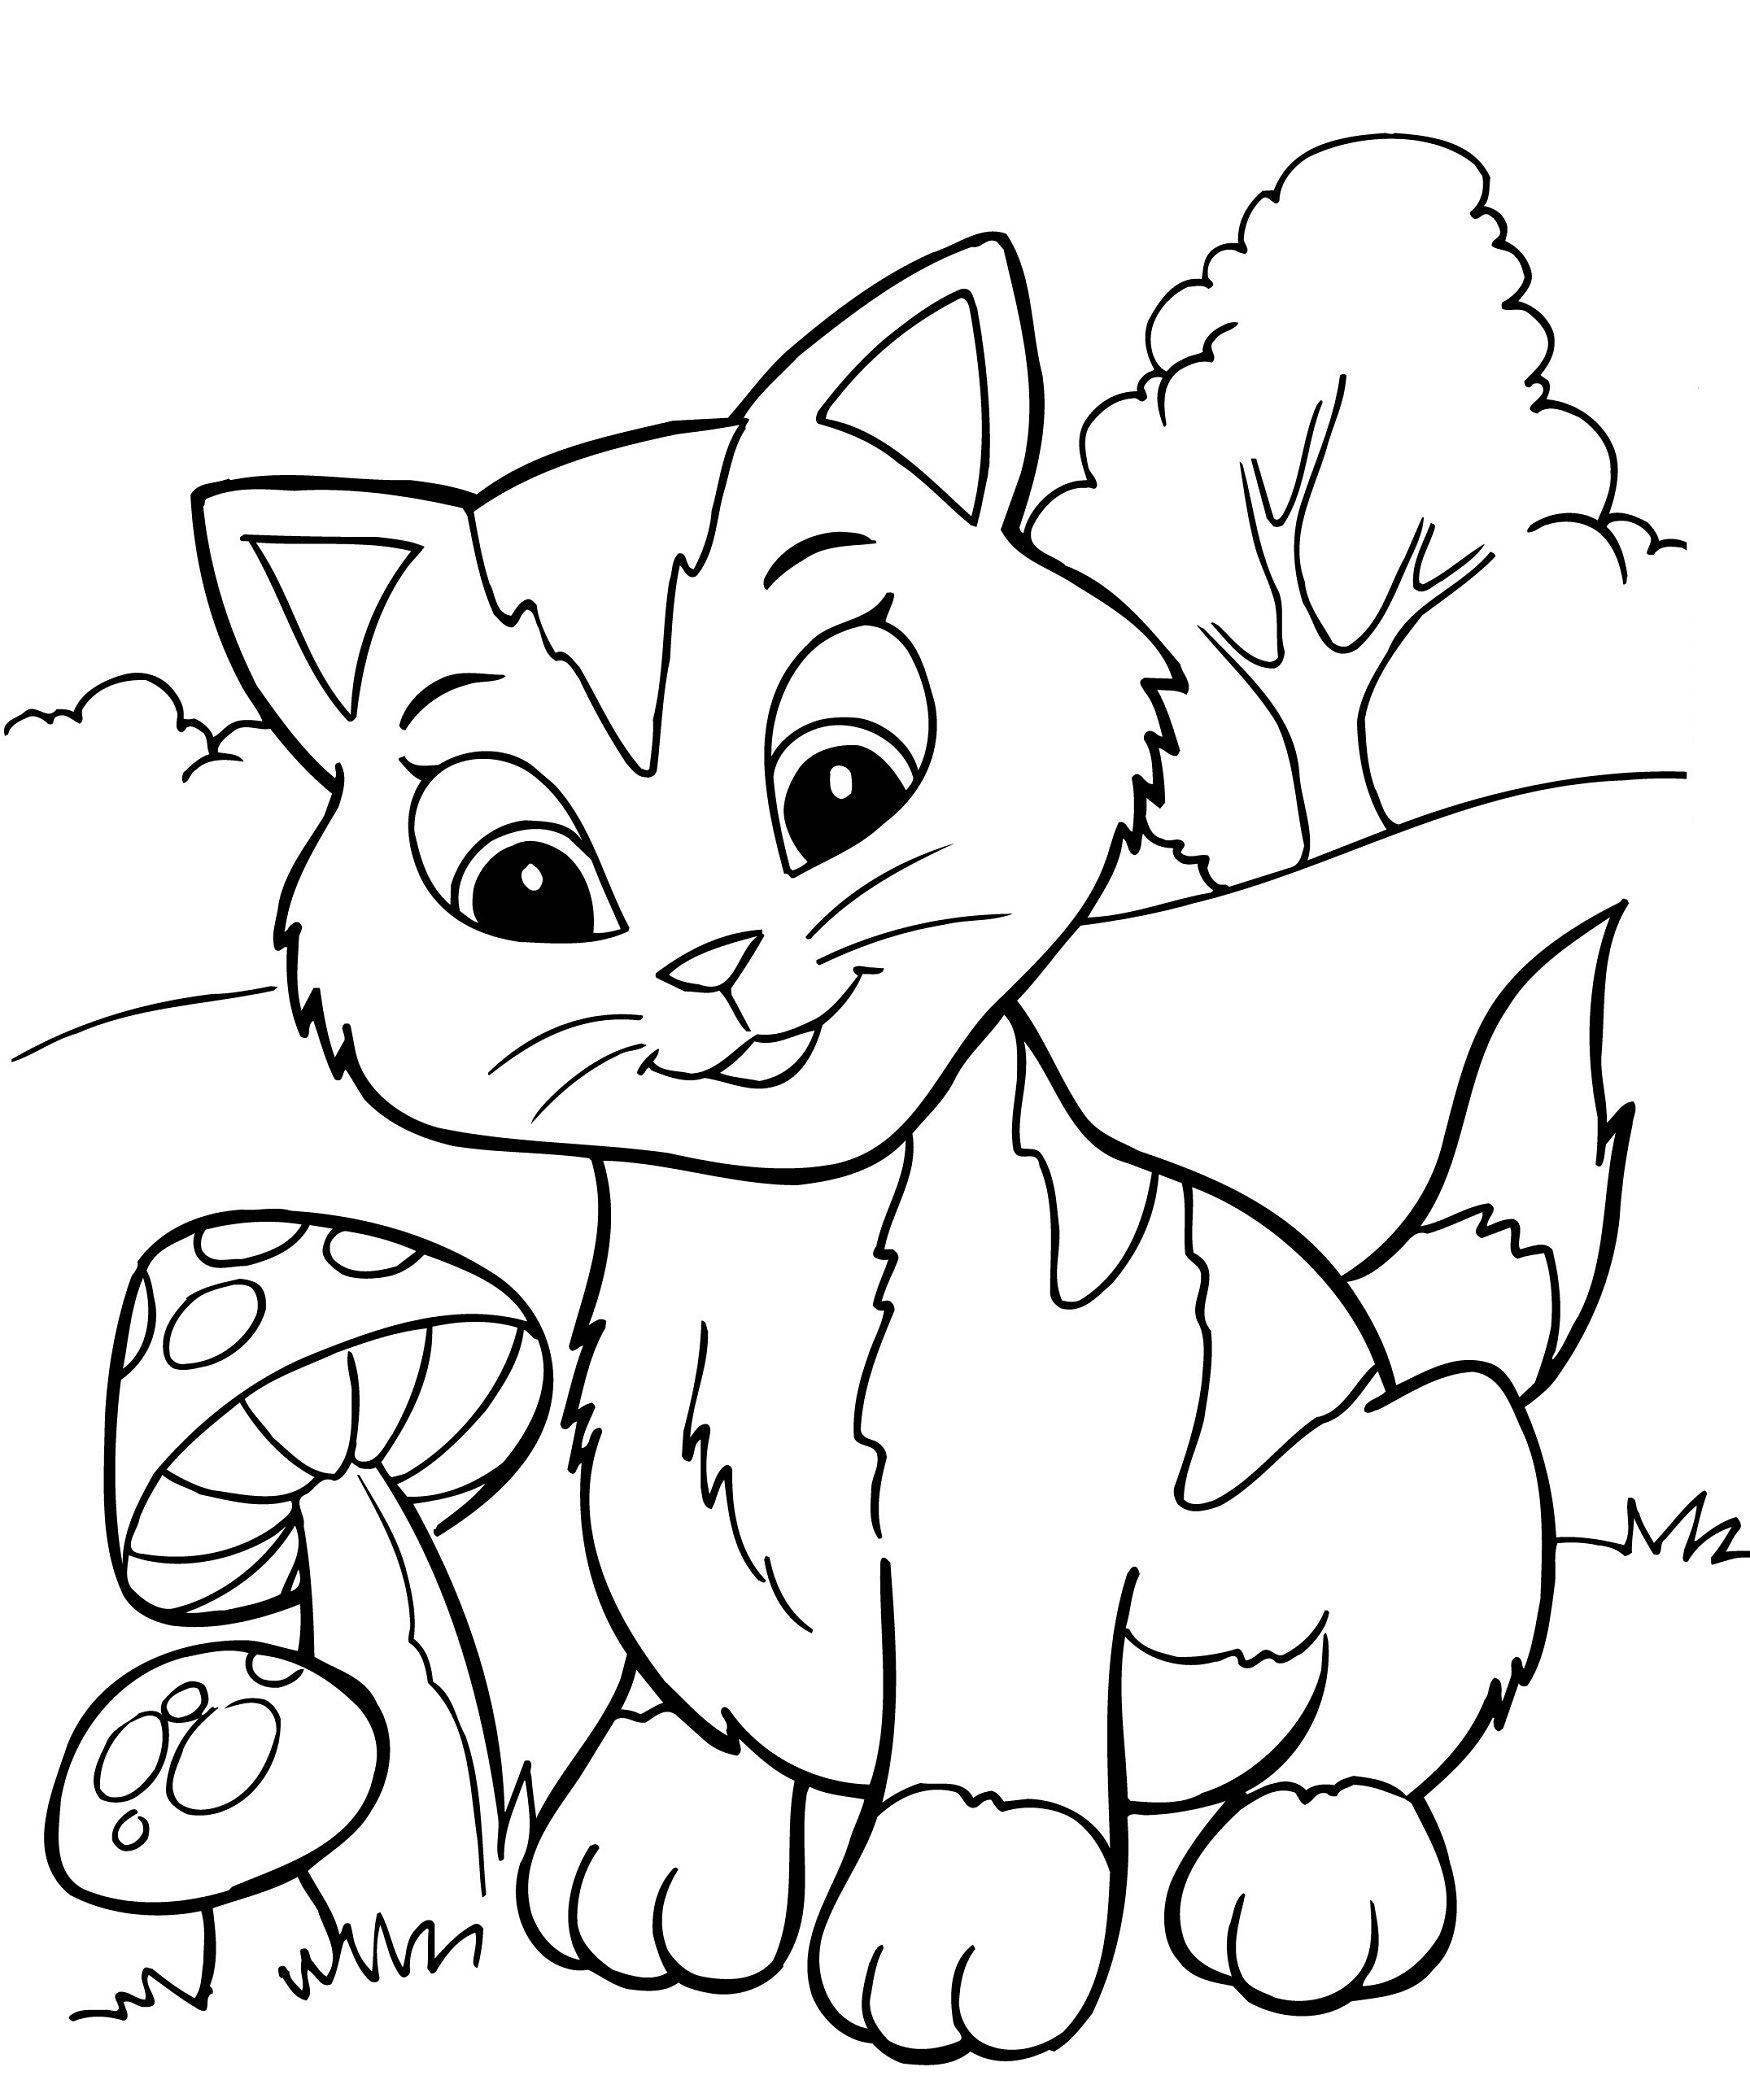 free coloring pages of kittens riscos graciosos cute drawings riscos de felinos coloring of pages kittens free